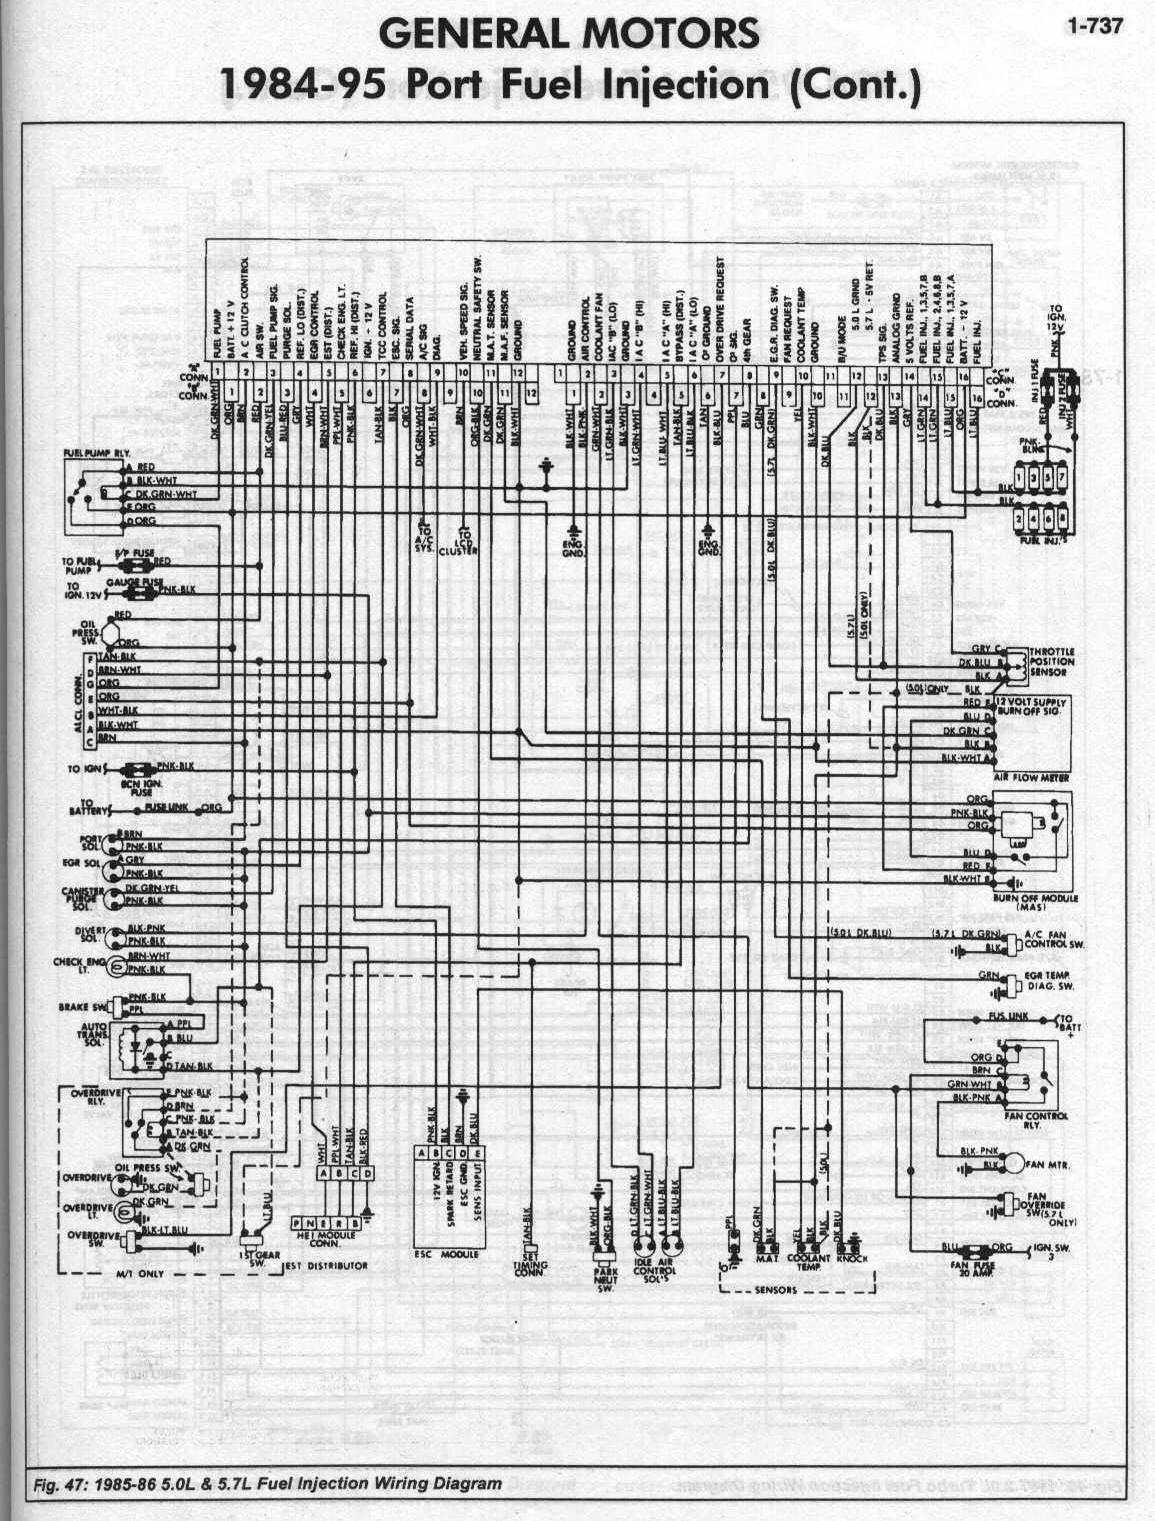 1989 corvette engine wiring diagram image 3